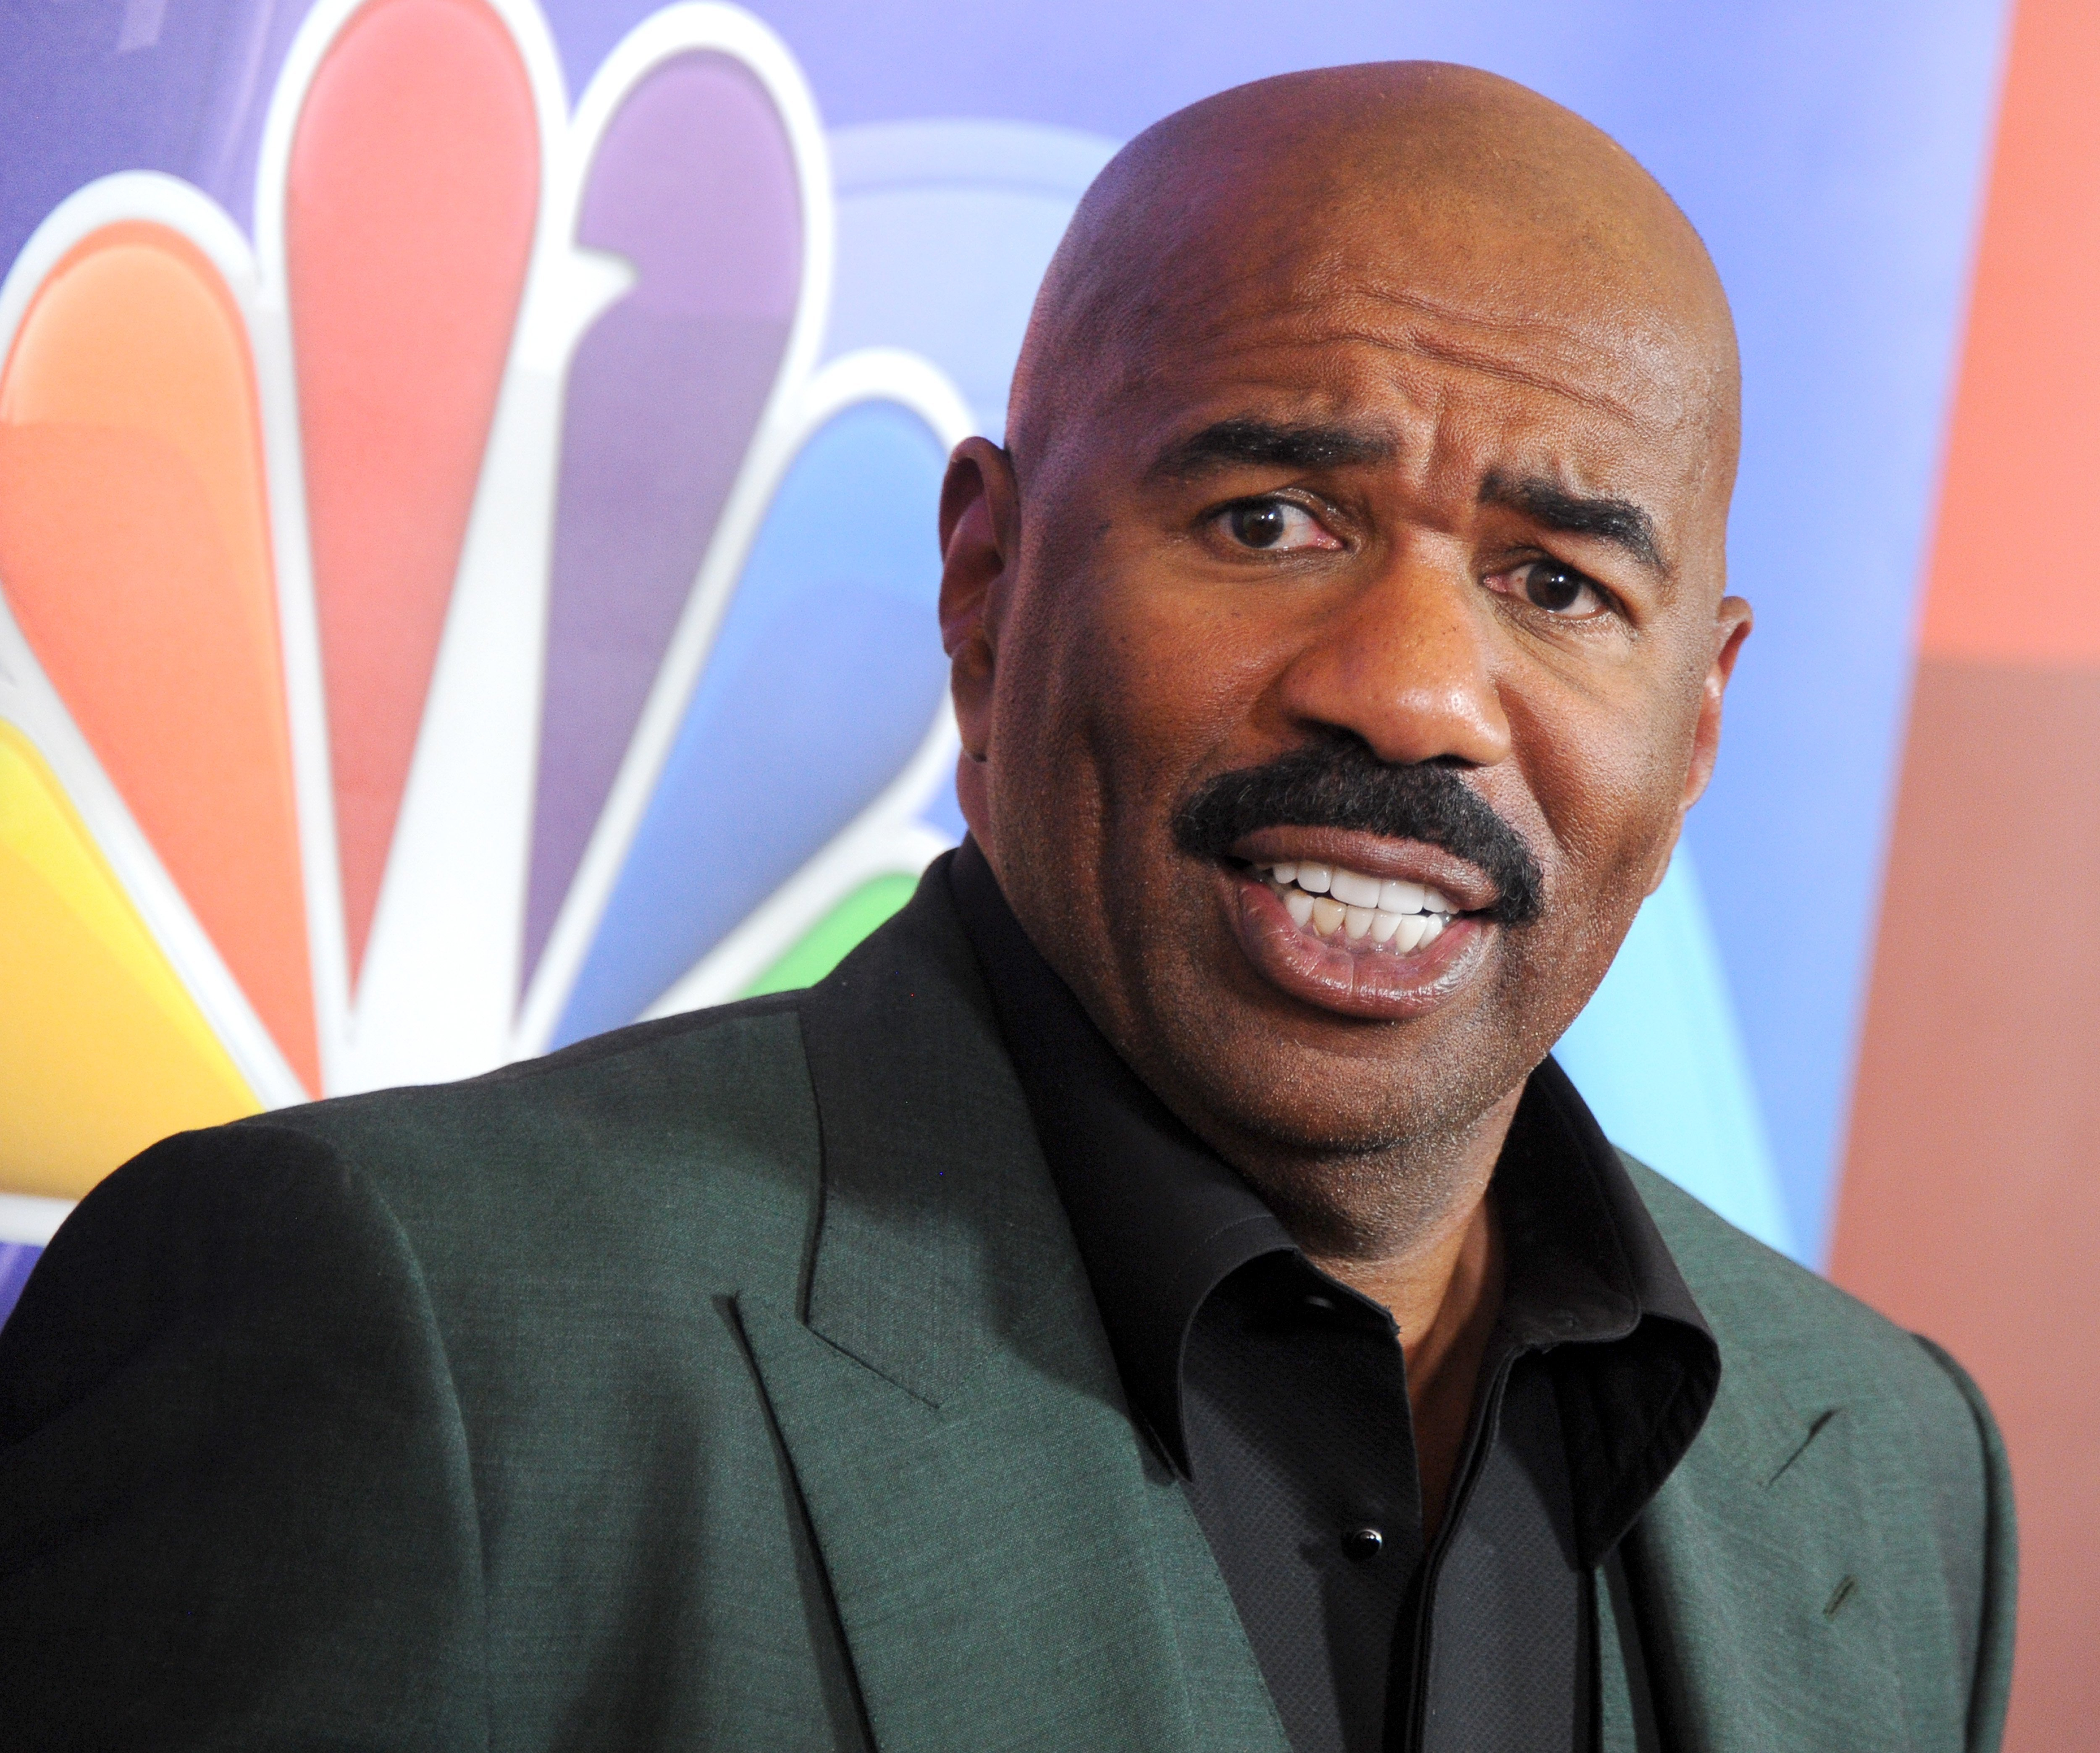 Steve Harvey announces his new business venture SteveHarveyDeals.com at Atlanta Crowne Plaza Hotel on February 02, 2019 |Photo: Getty Images